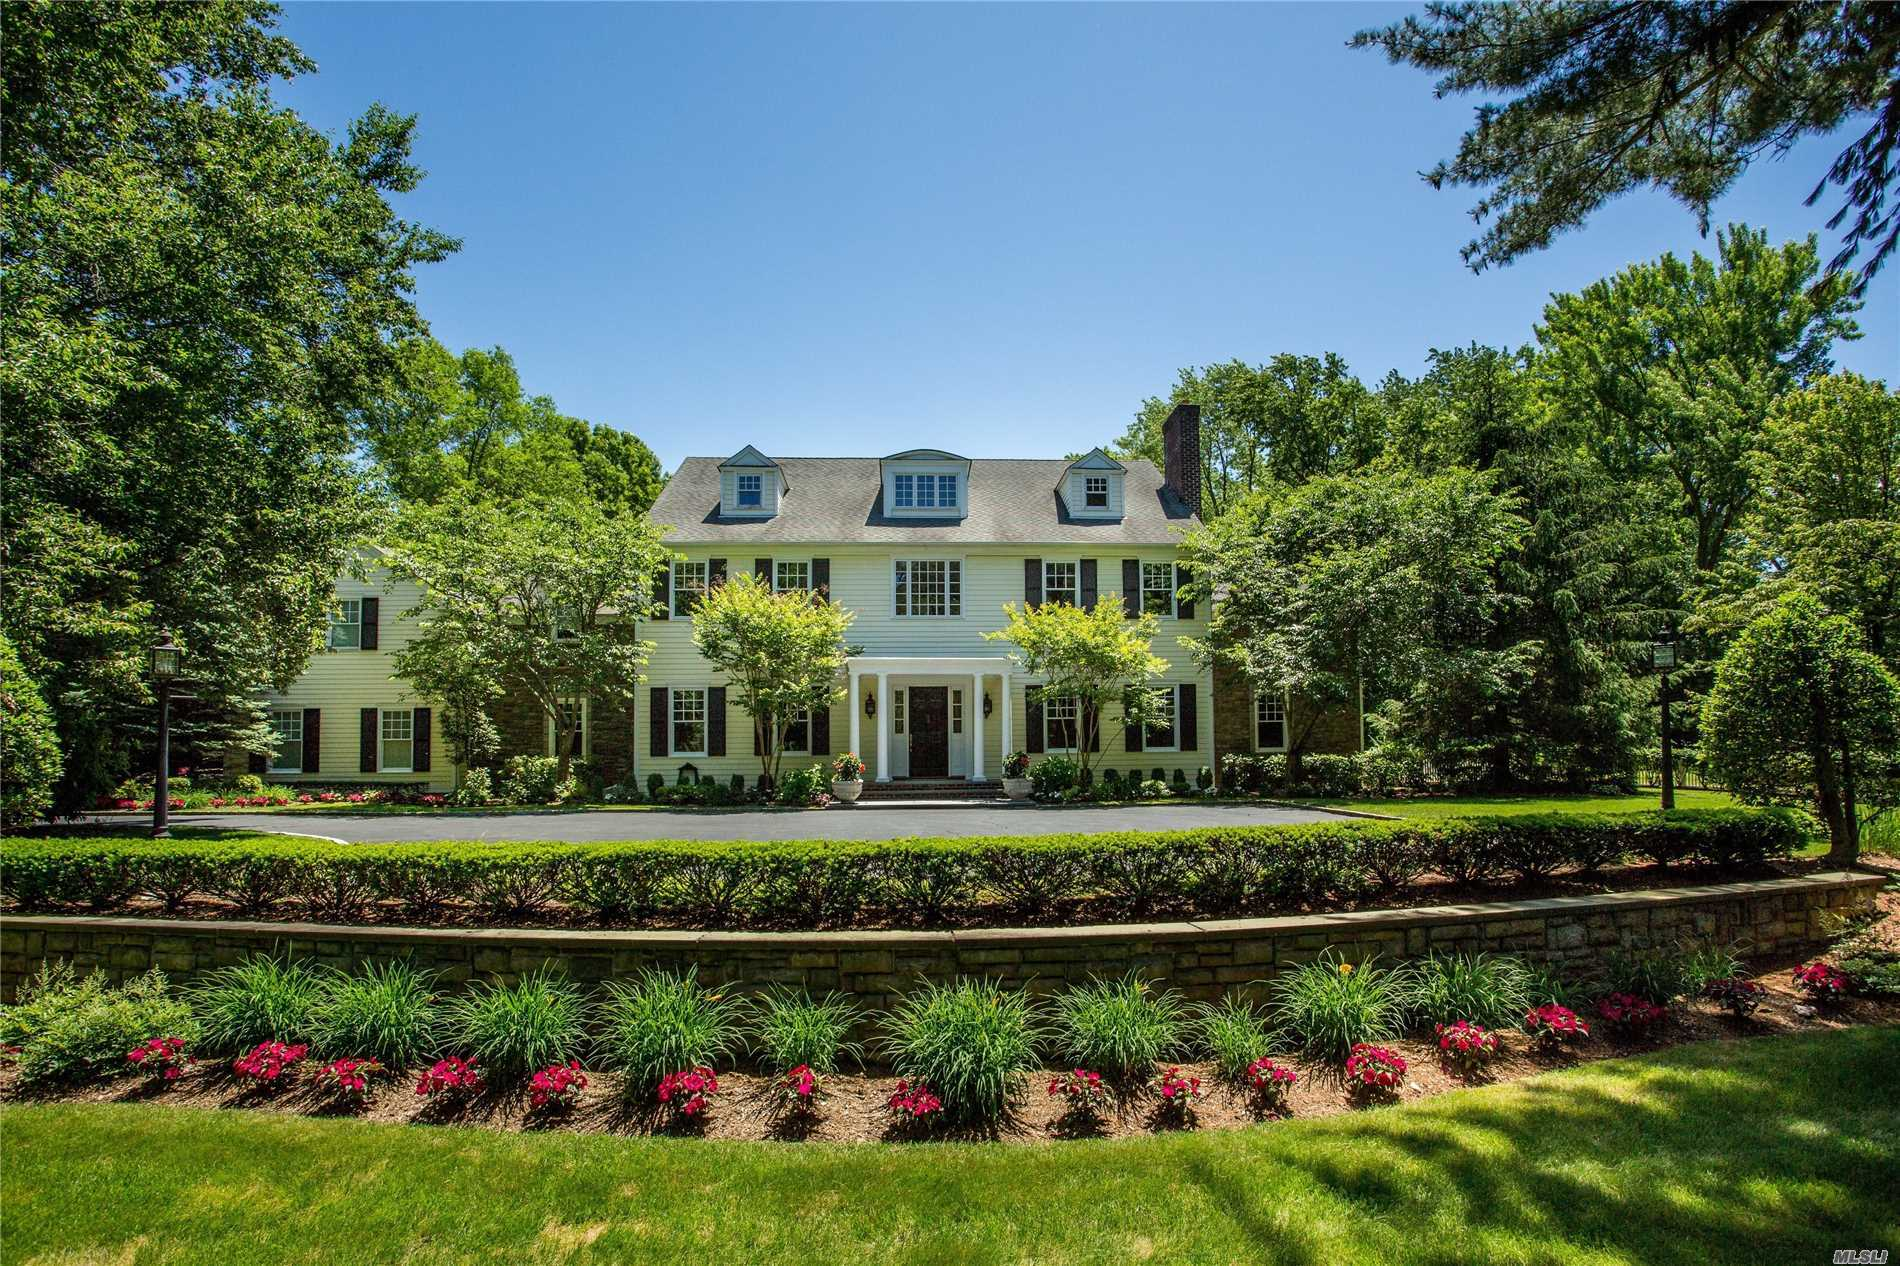 Gated Entry Leads To This Classic Colonial Set On 2.78 Acres Of Lawn, Gardens, Tennis Court, Putting Green, Sparkling Pool & Terrace. Traditional Layout Has Lovely Entertaining Rooms. Living Room W/Fp, Beautiful Library/Office Has Custom Built Ins, Fdr, Fantastic Chef's Eik With High End Appliances That Opens To Wonderful Family Room W/ Fp. Luxurious Master Suite Has Fp & 2 Walk In Closets. Home Theater, Gym, Generator. Amazing Residence For Inside And Outdoor Entertaining! This Home Has It All!